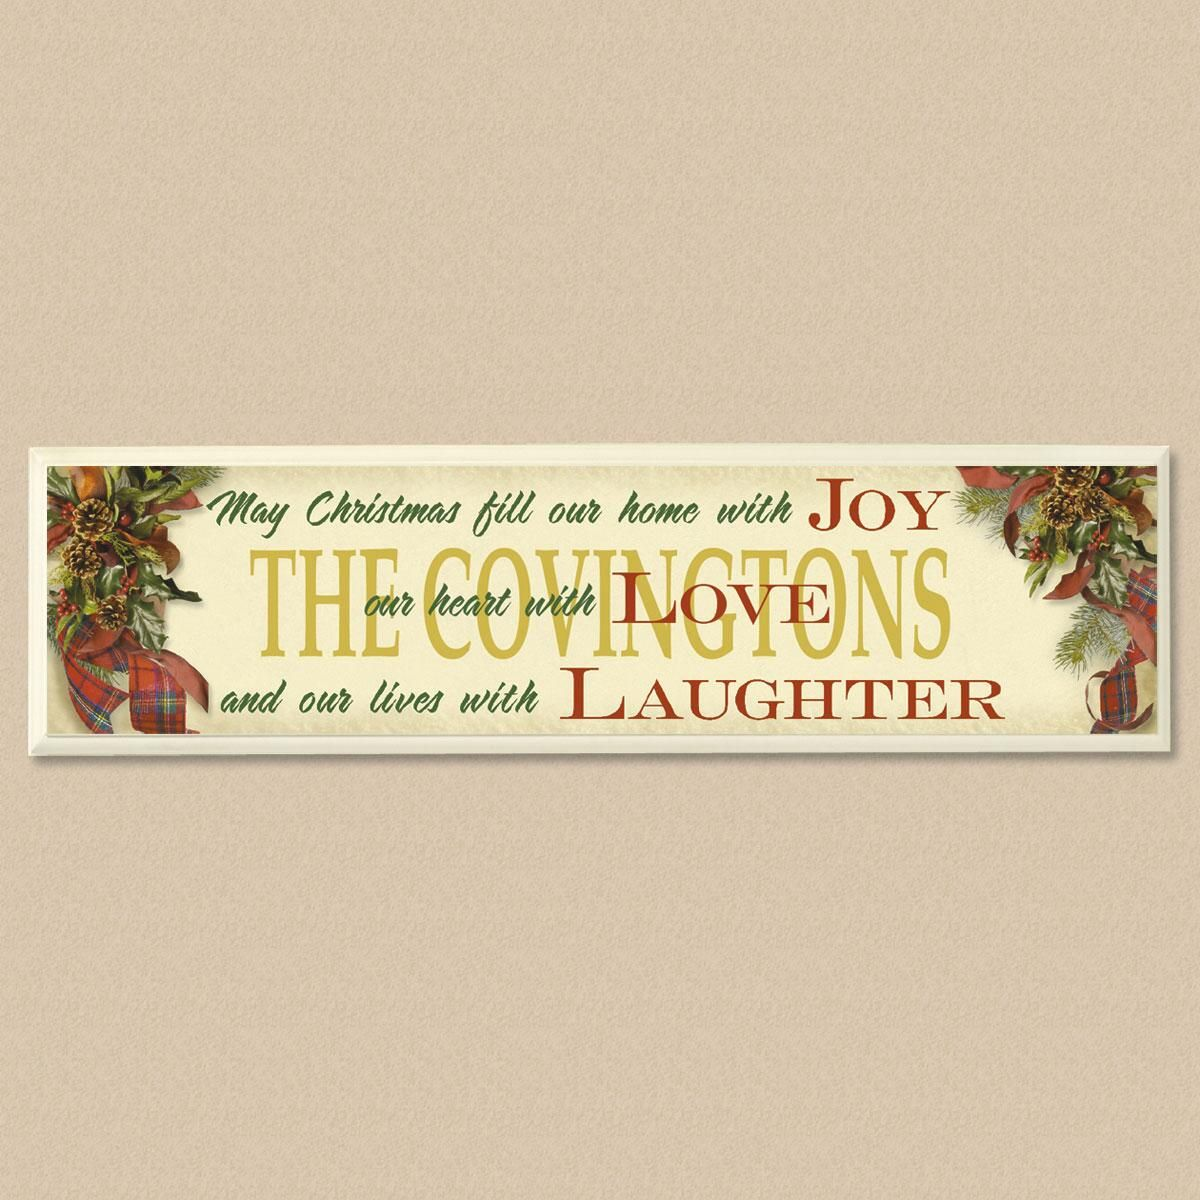 Home with Joy Wooden Wall Plaque